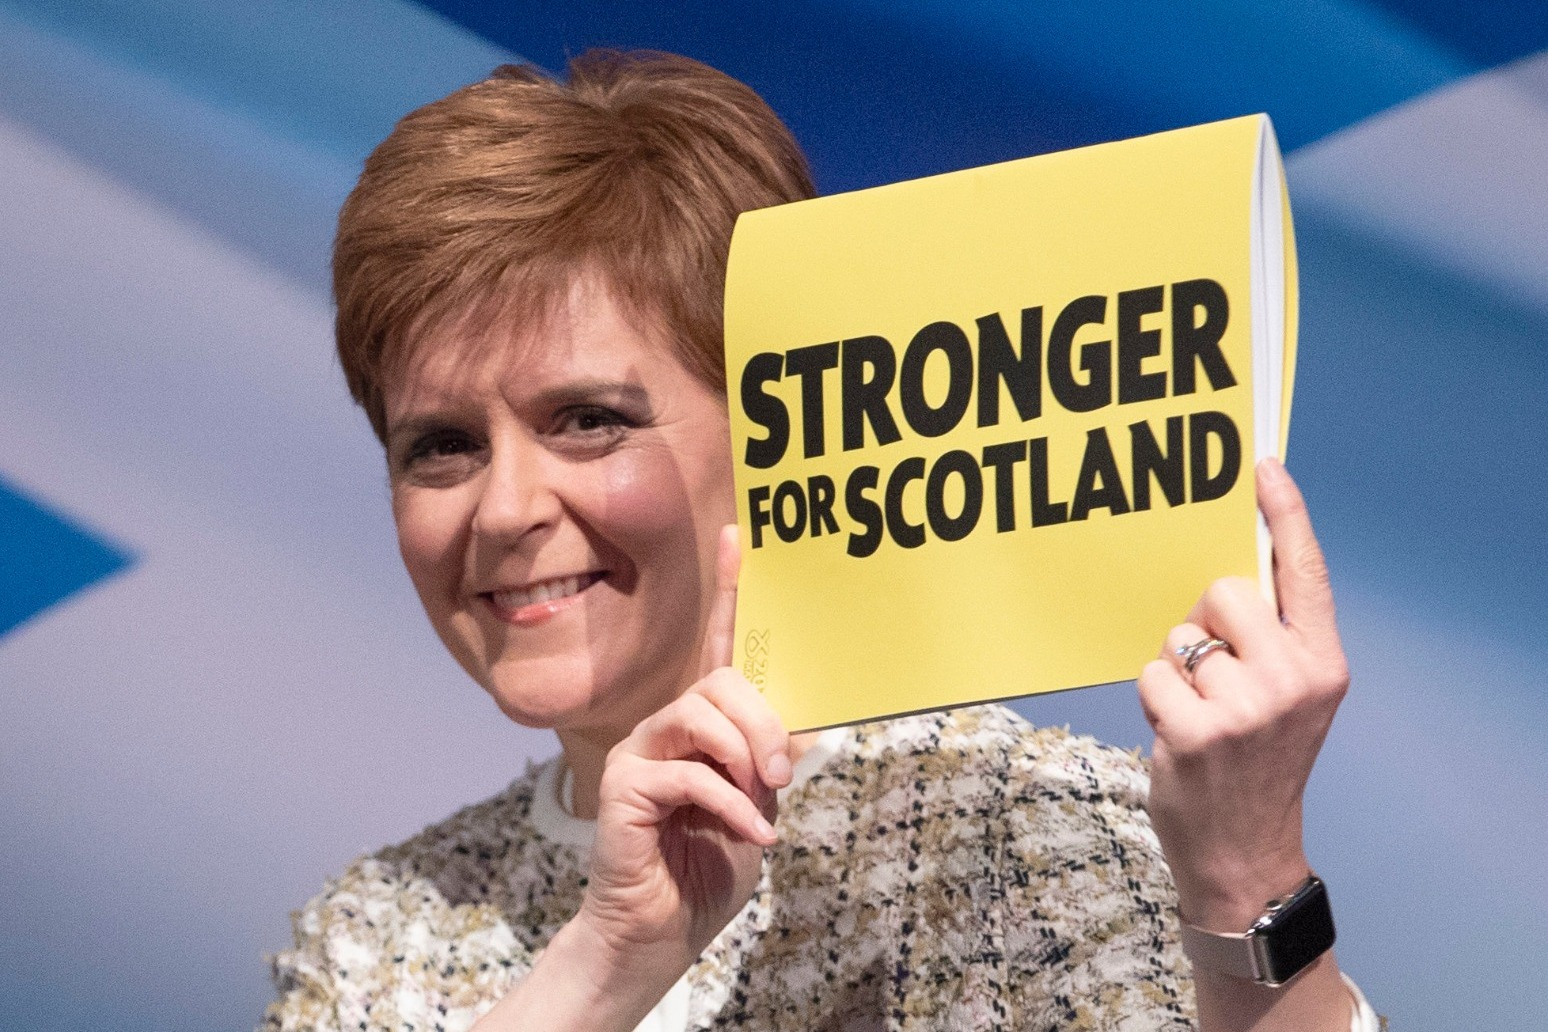 DEBATE TO BE HAD ABOUT FUTURE OF MONARCHY: STURGEON